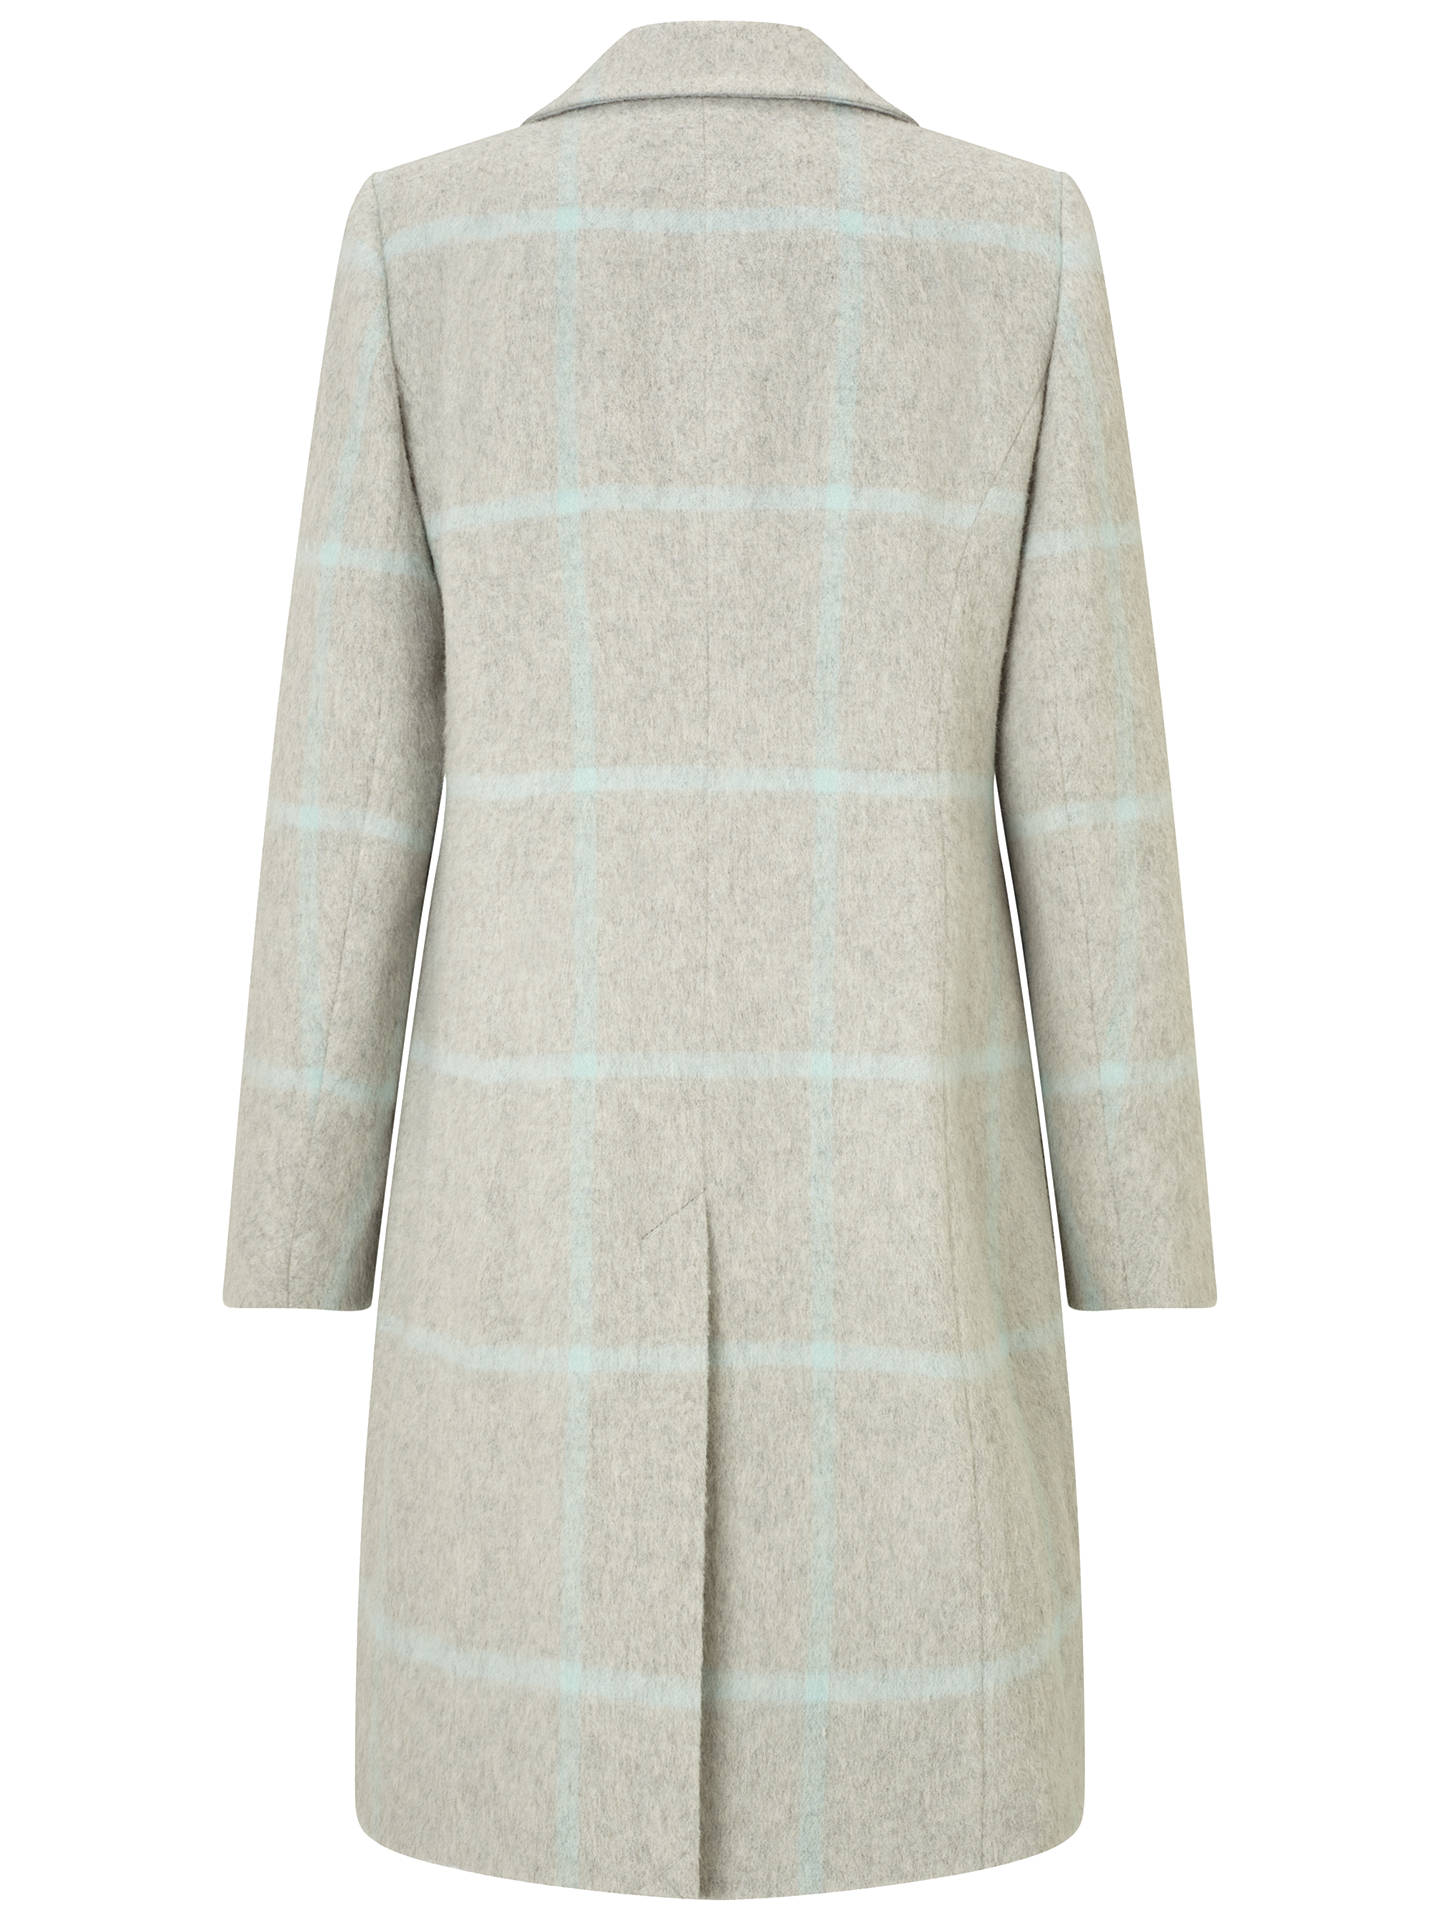 BuyFour Seasons Single Breasted Check Coat, Pale Grey, M Online at johnlewis.com